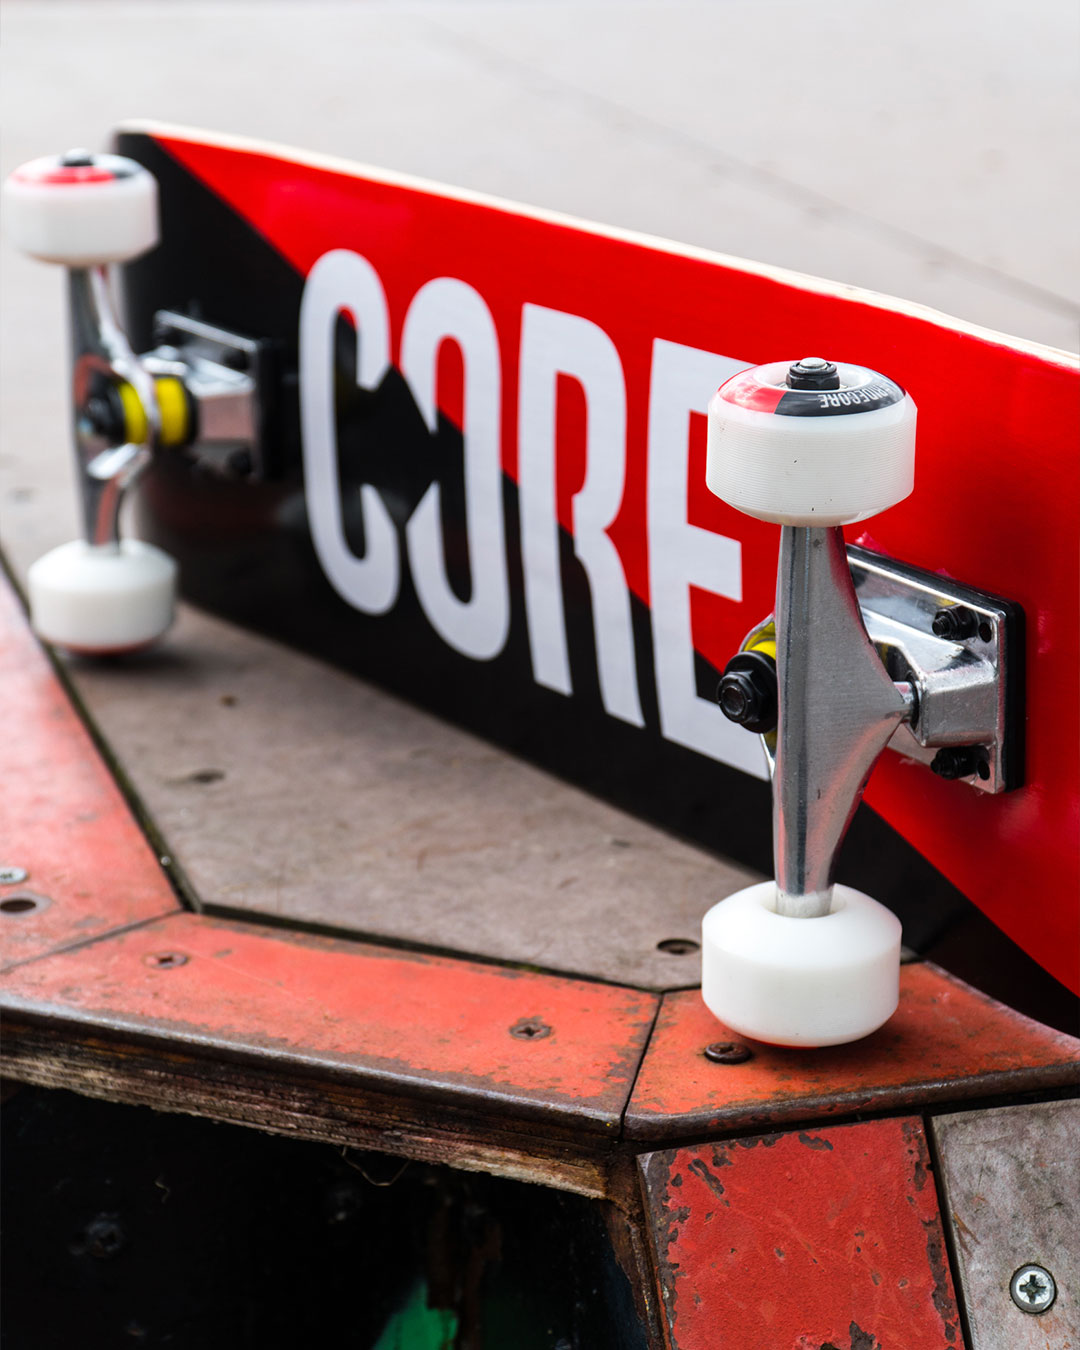 CORE Skateboards: The Ultimate Beginners Skateboard!